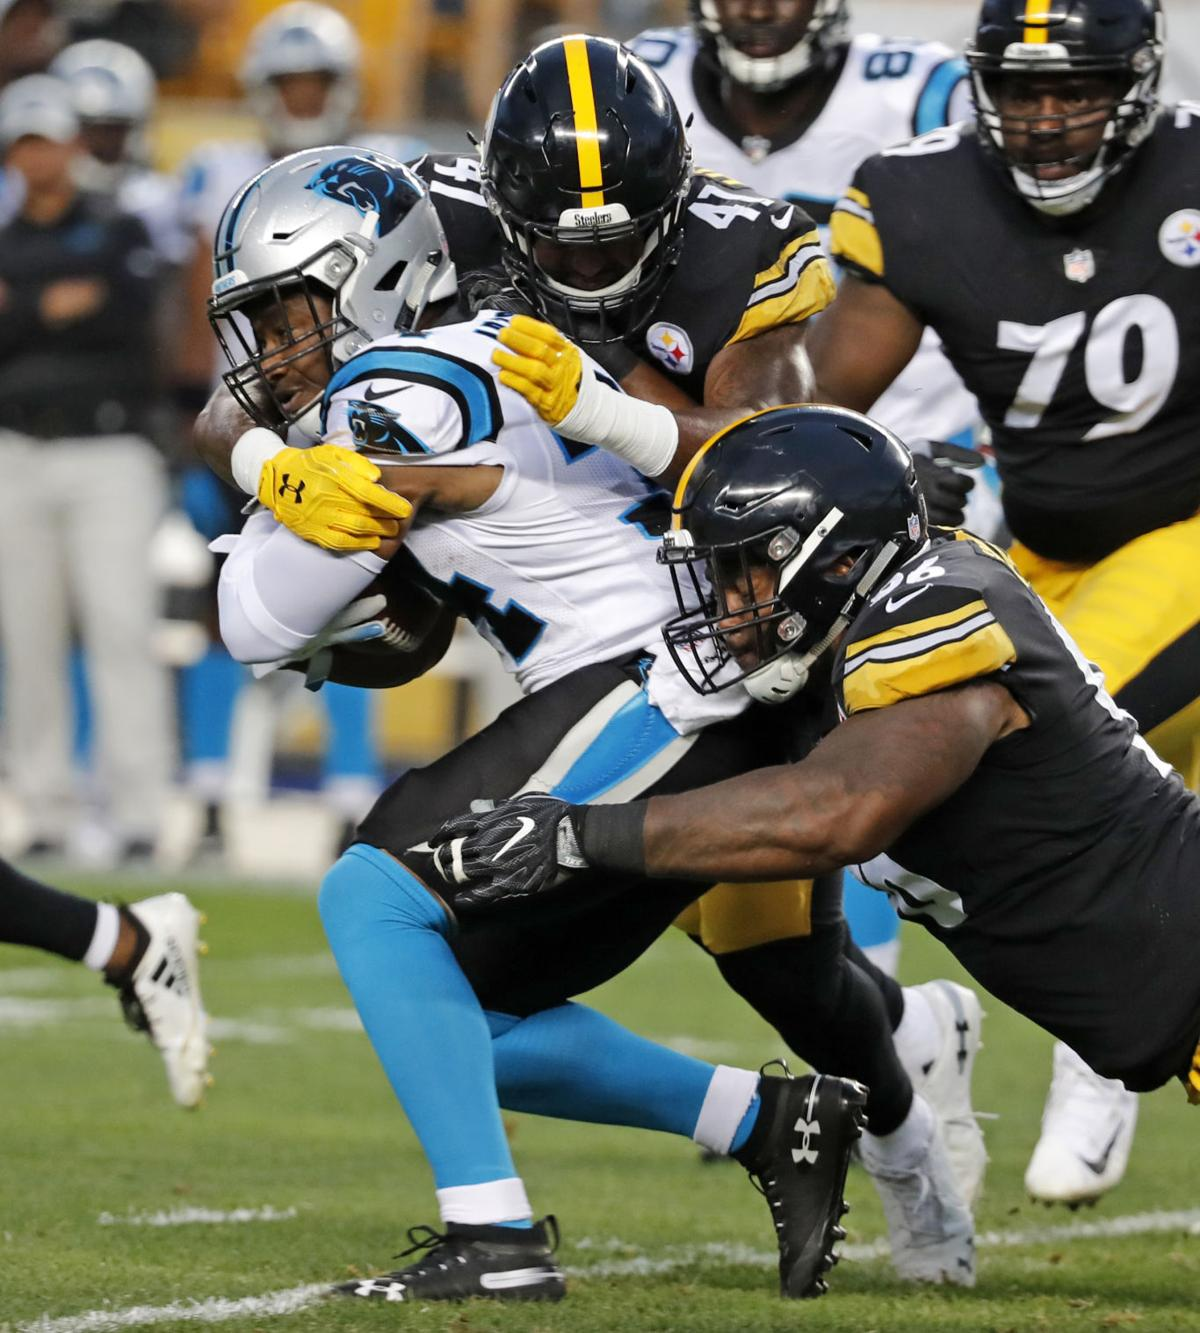 b778c8ca4 Dobbs shines as Steelers roll past Panthers